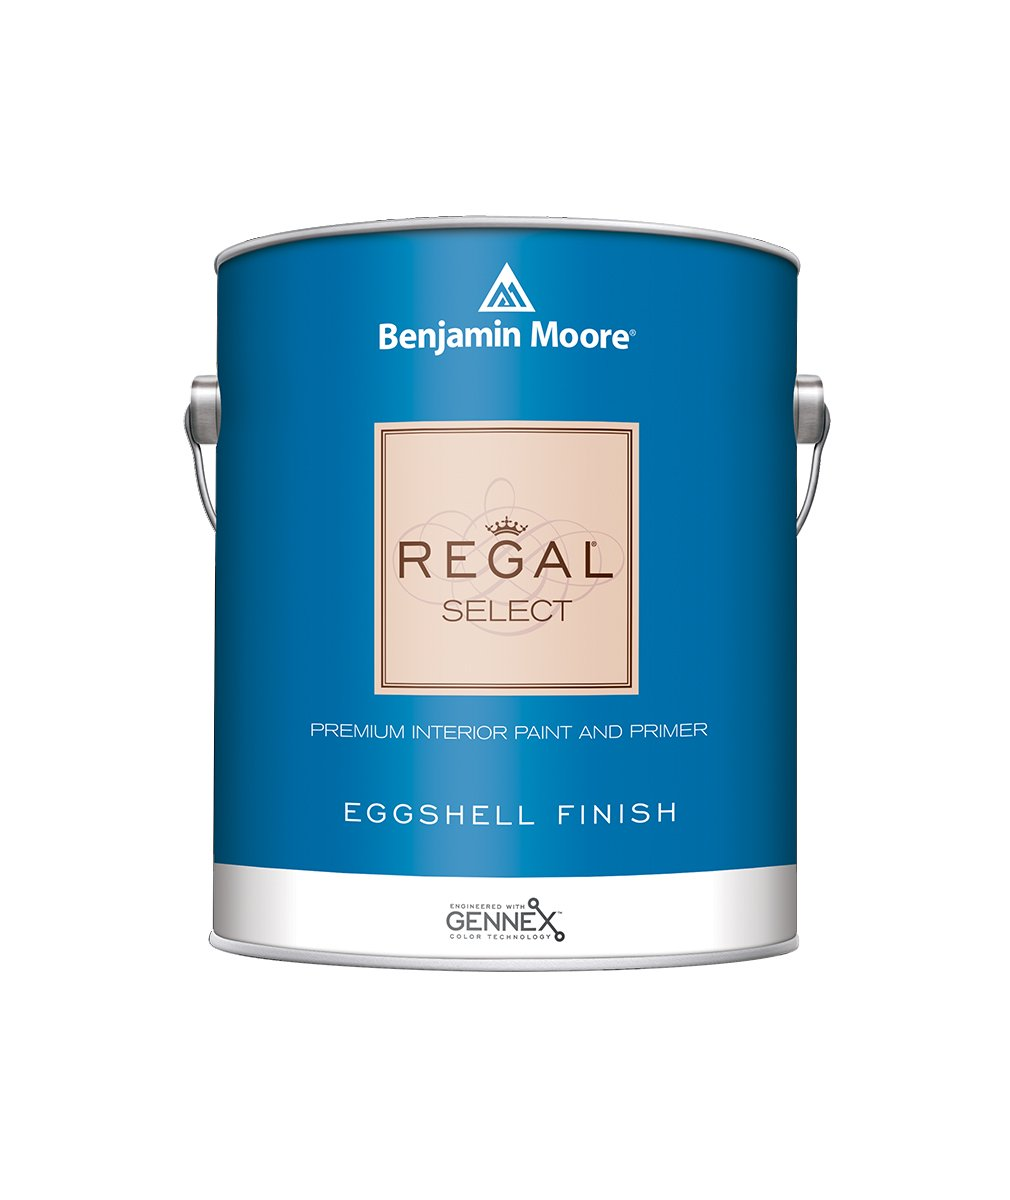 Benjamin Moore Regal Select Eggshell Paint available at JC Licht.